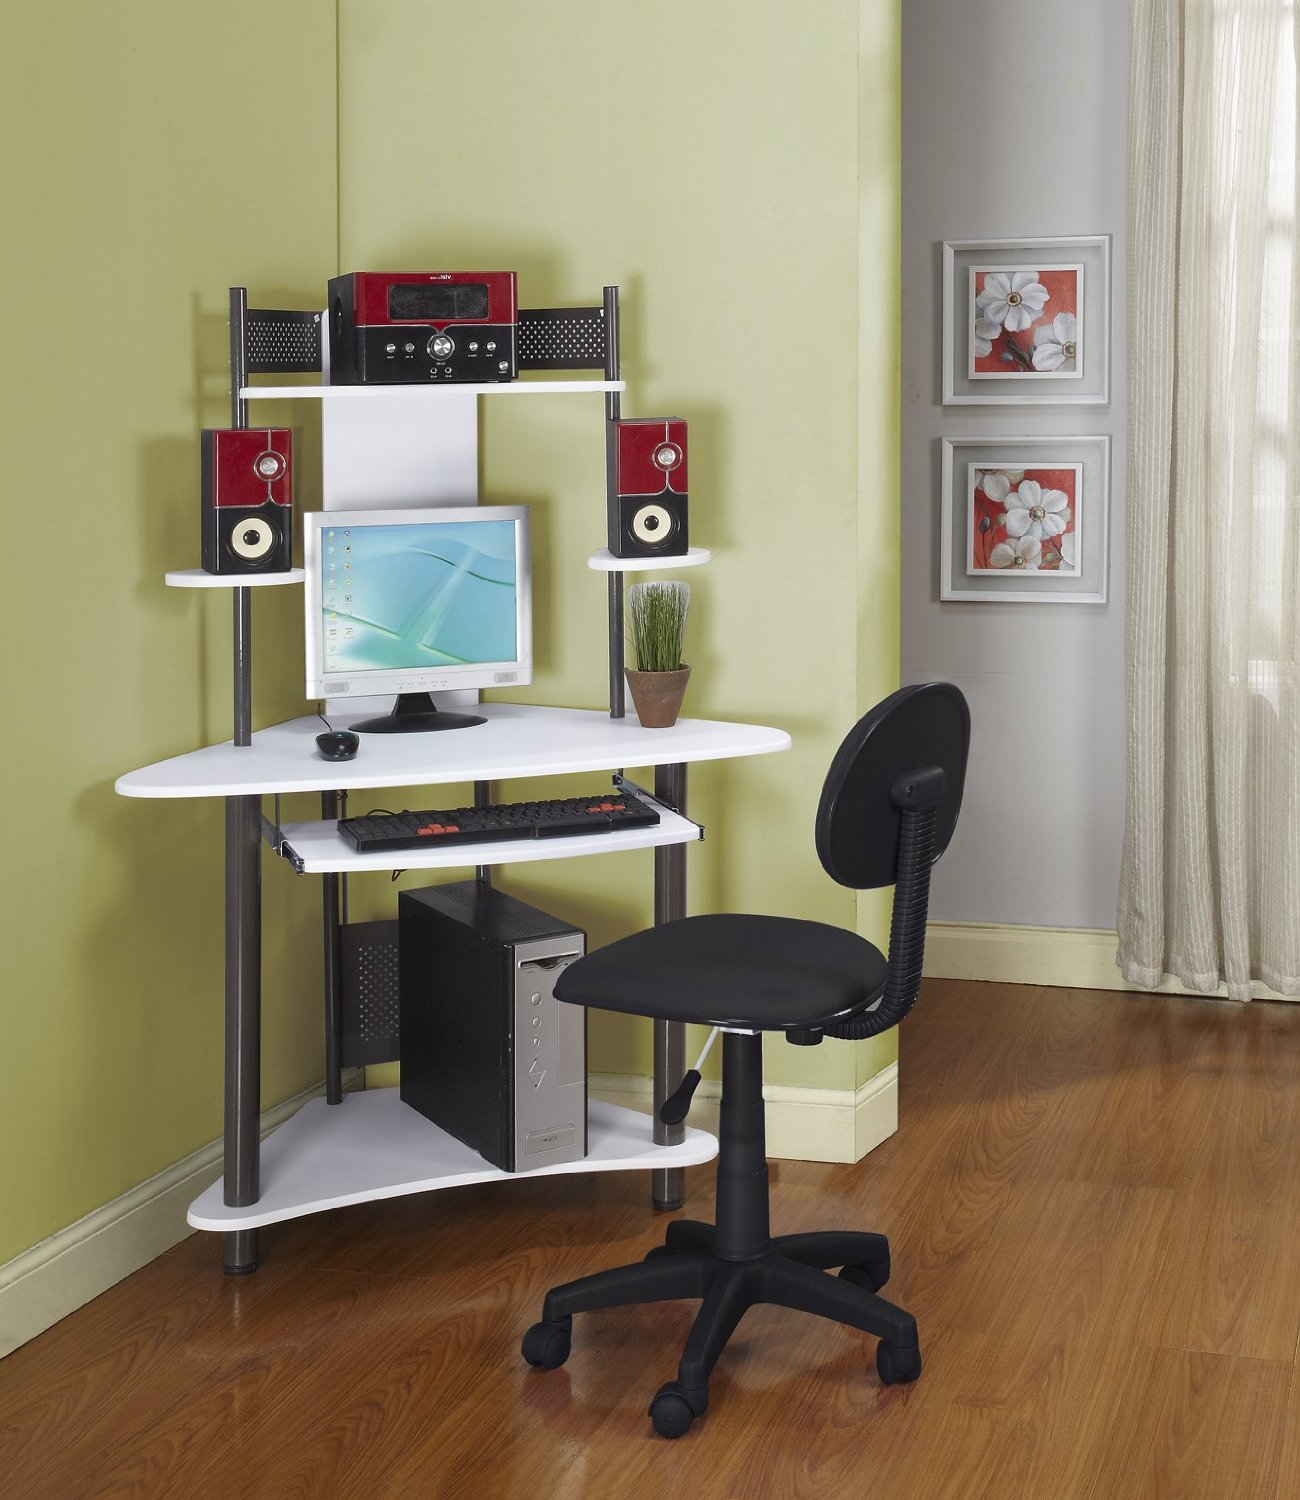 Cheap corner desks budget friendly and room beautifier - Corner desk for small space ...